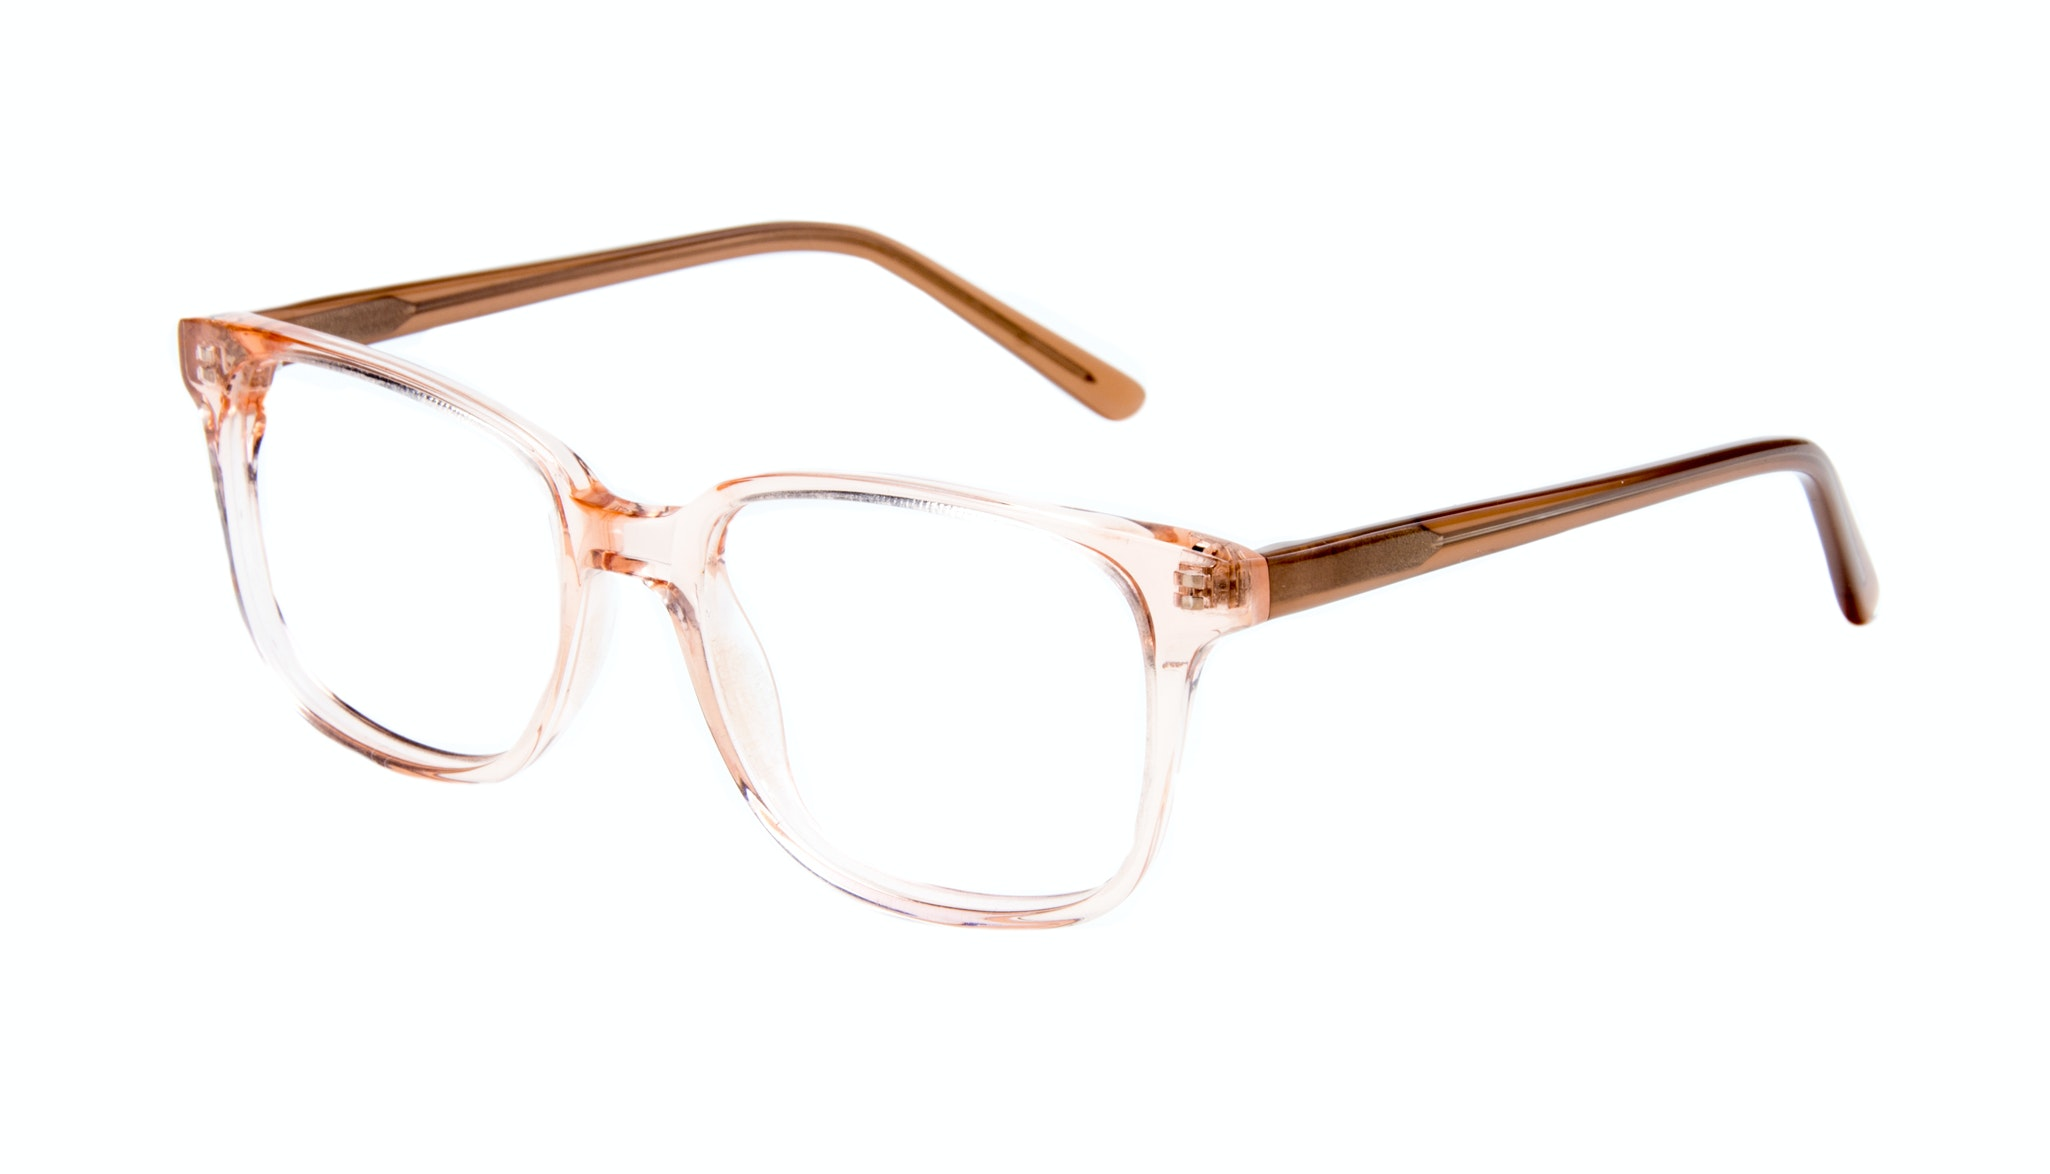 Affordable Fashion Glasses Square Eyeglasses Men Women Windsor Pink Metal Tilt